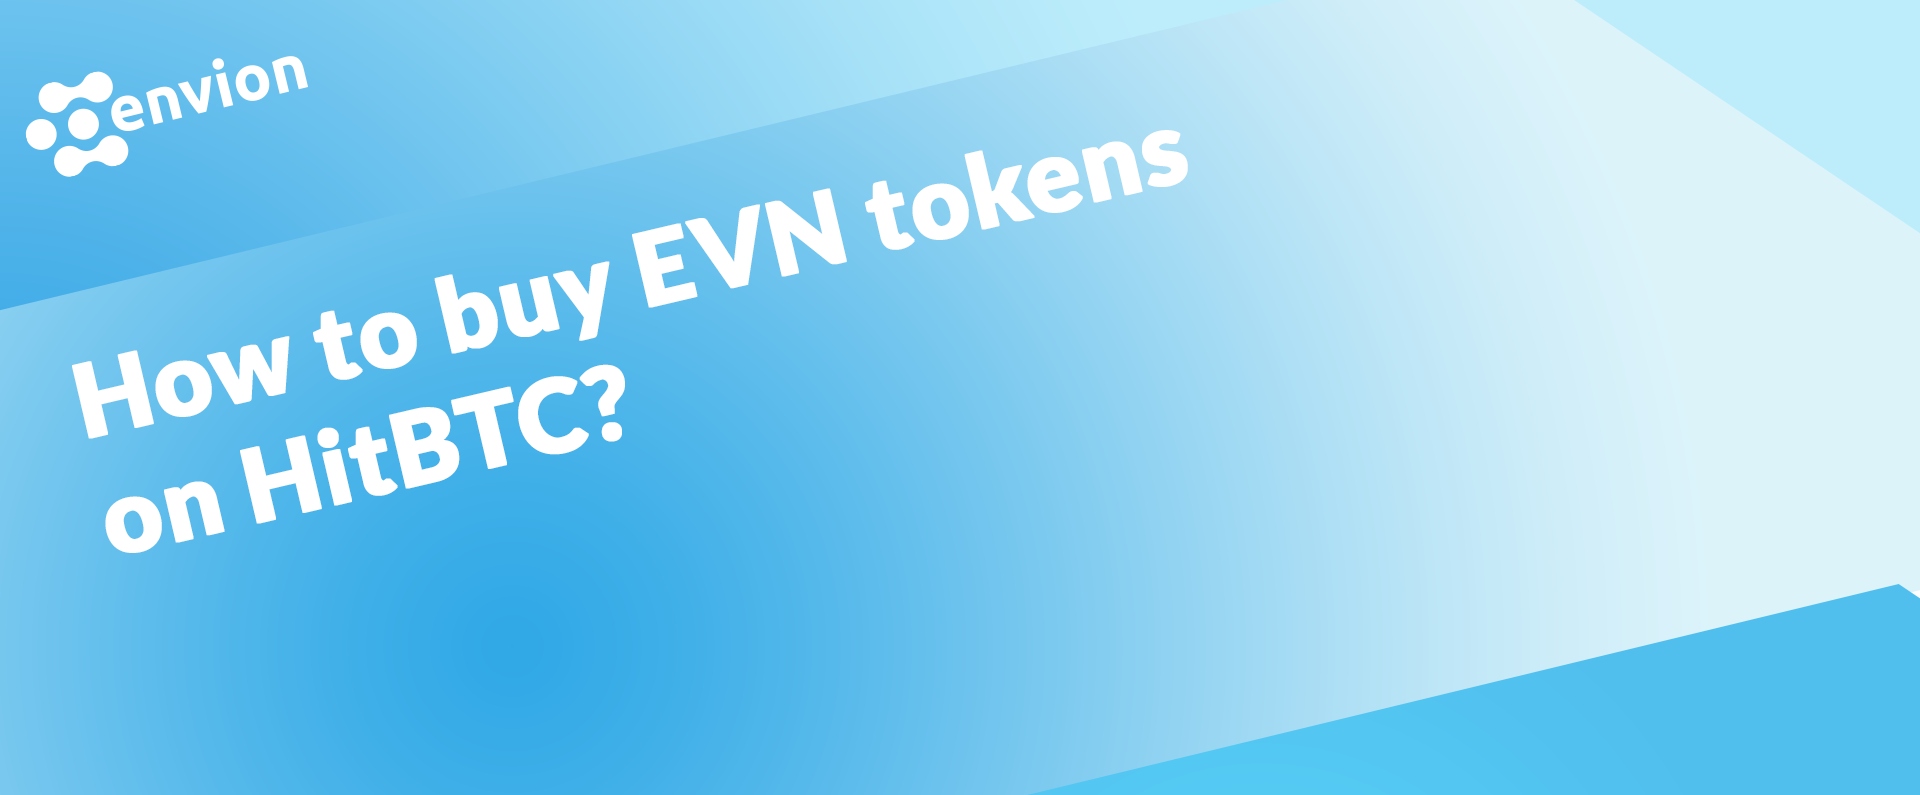 Guide how to buy evn tokens on hitbtc envion medium ccuart Gallery